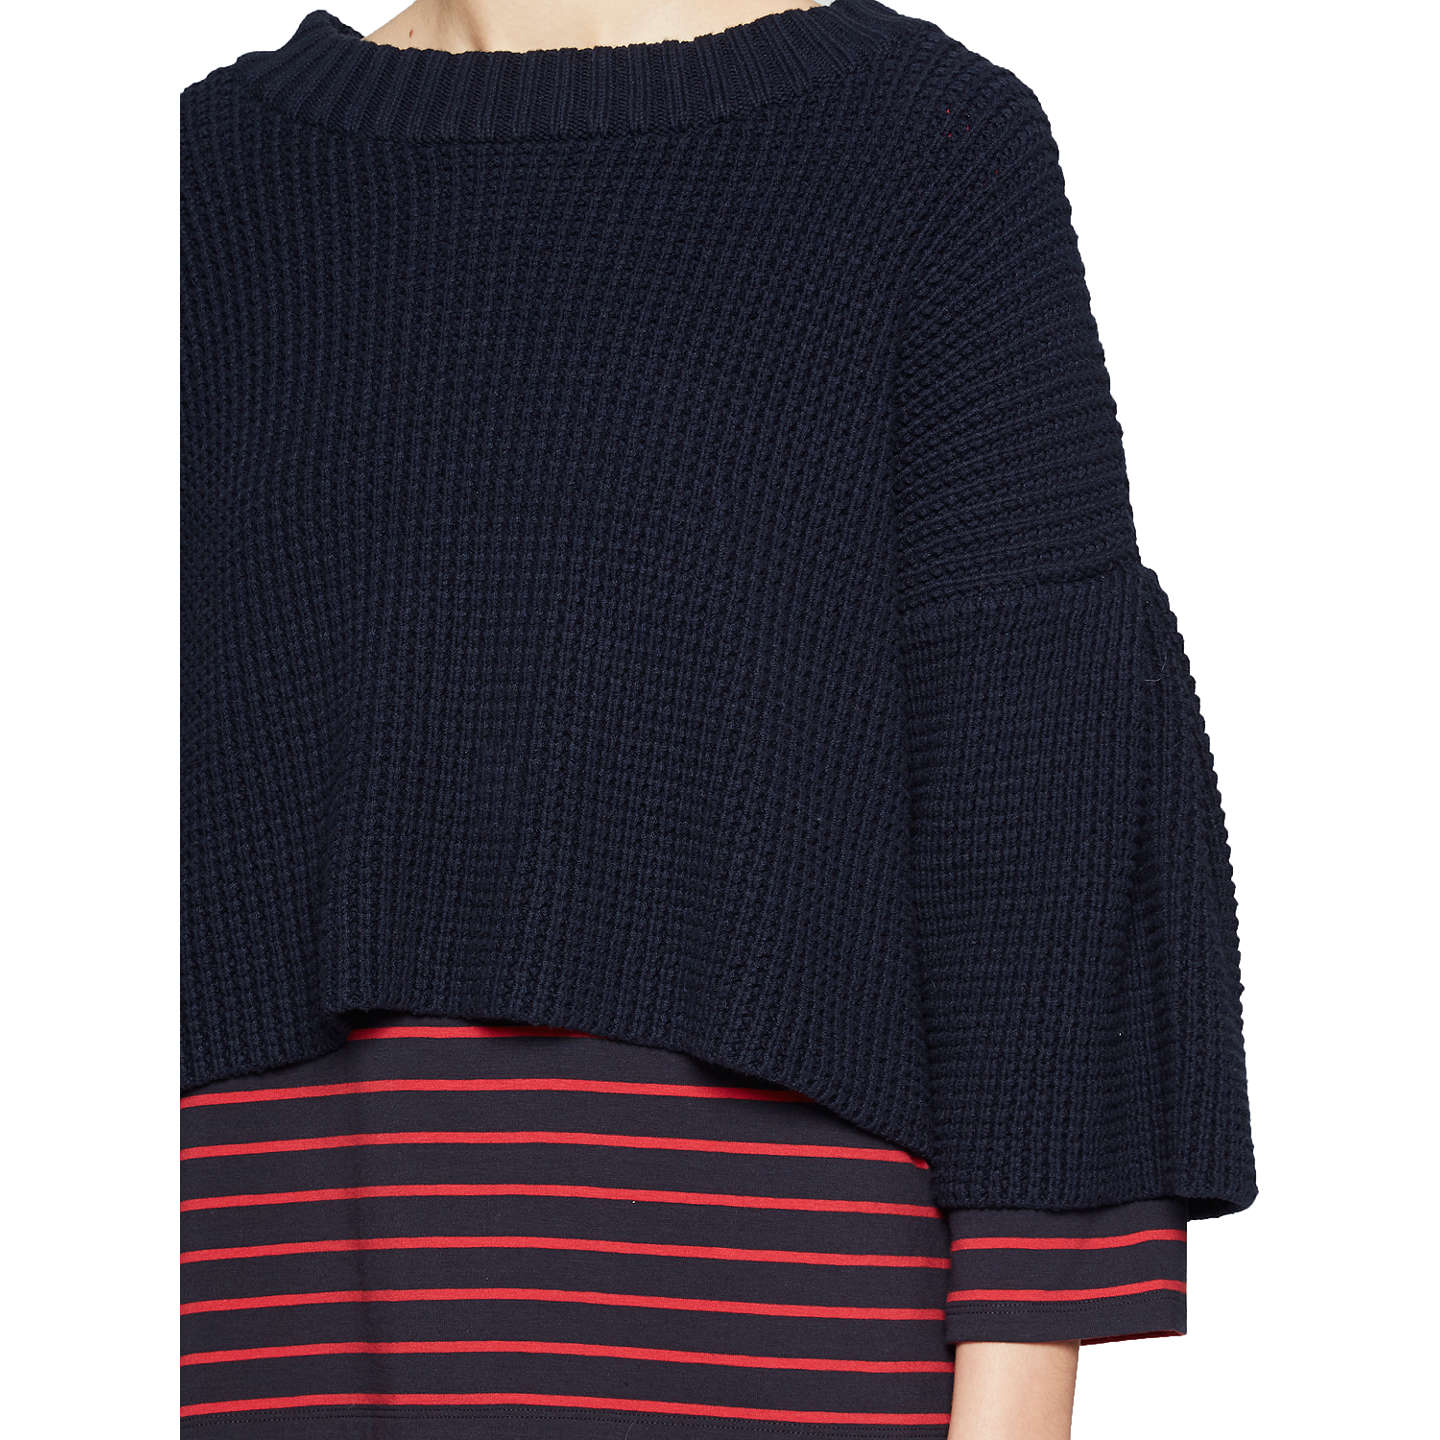 BuyFrench Connection Ellie Waffle Knit Jumper, Utility Blue, XS Online at johnlewis.com